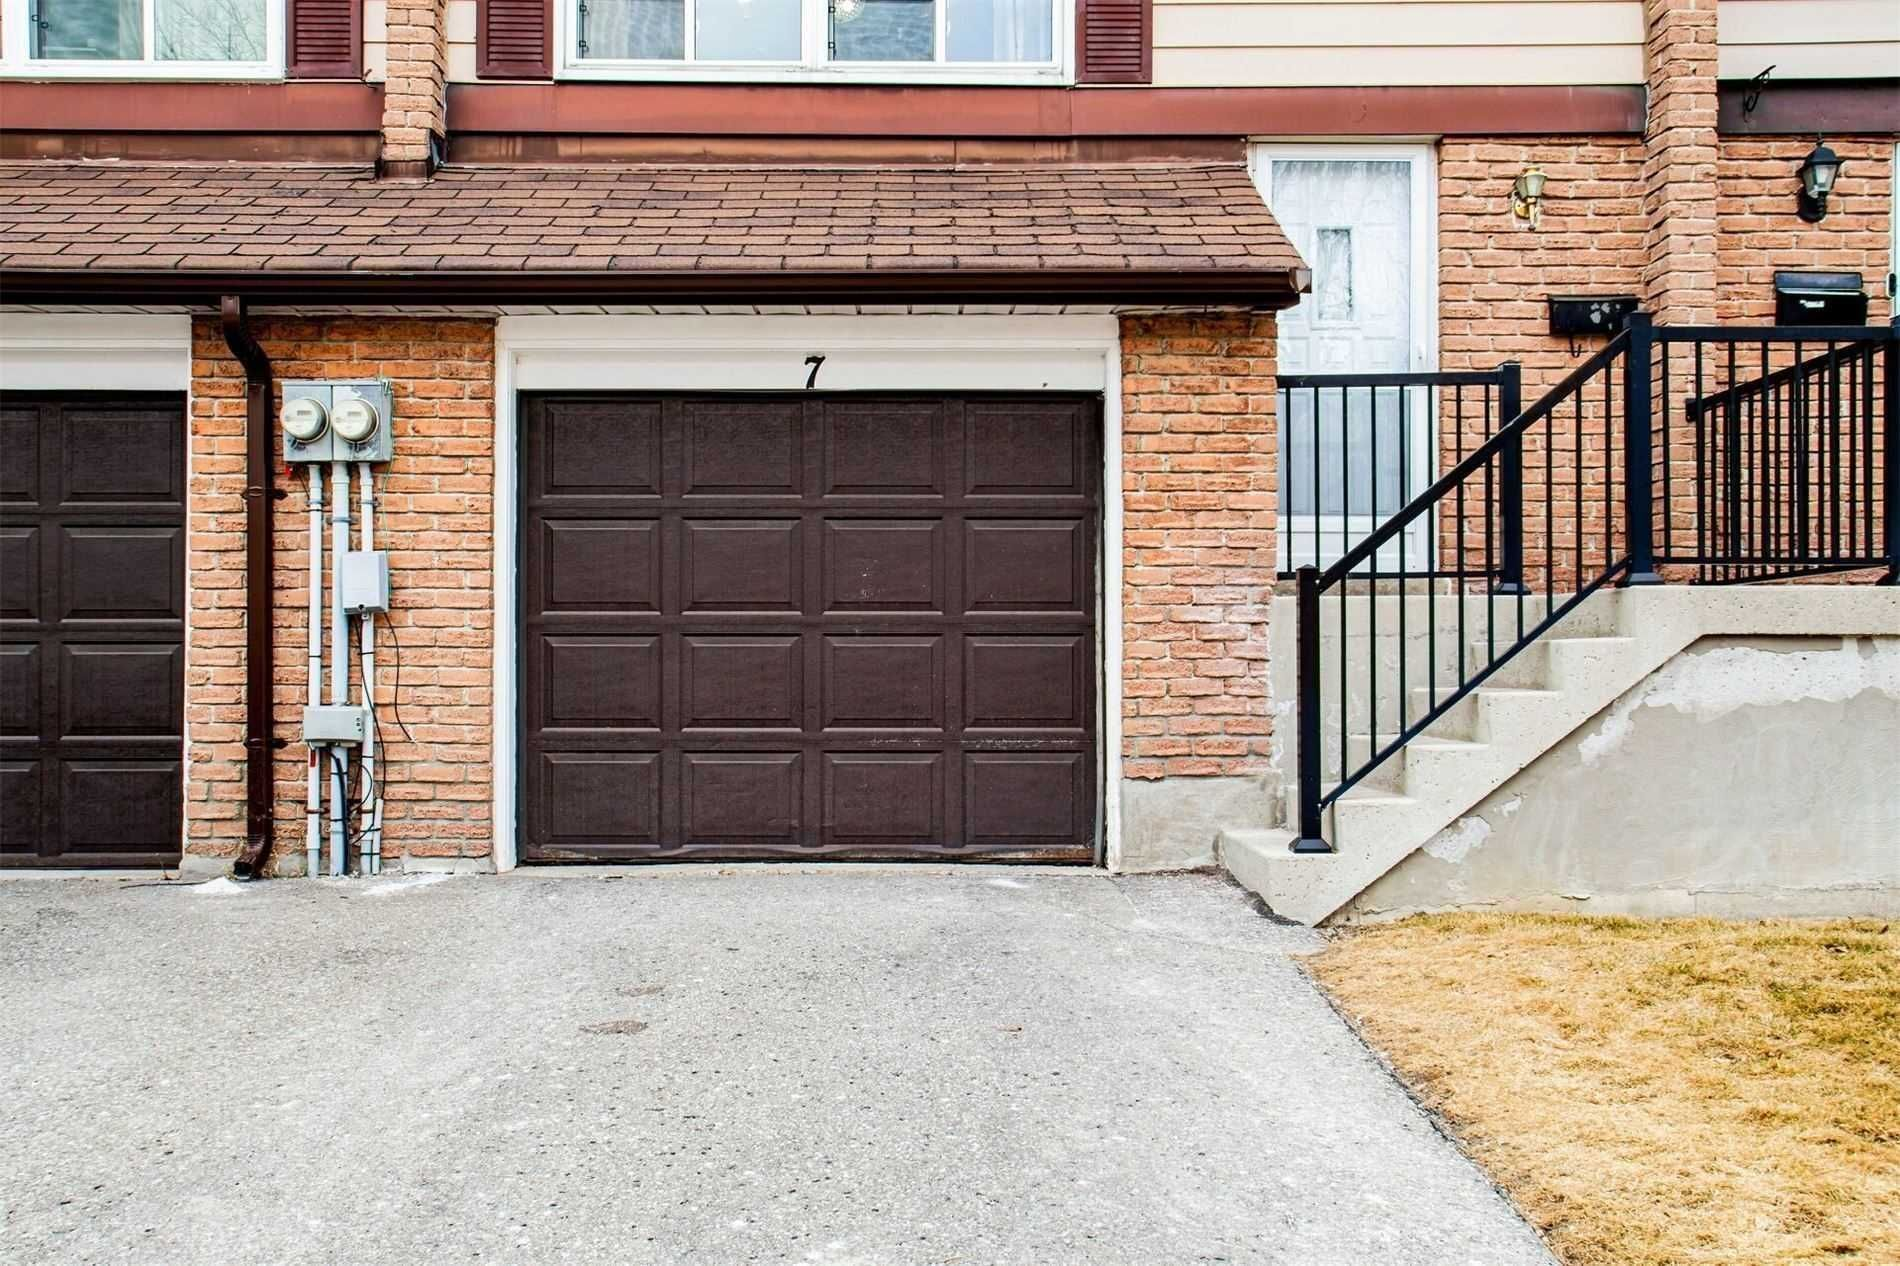 320 Blackthorn St, unit 7 for sale in Toronto - image #2